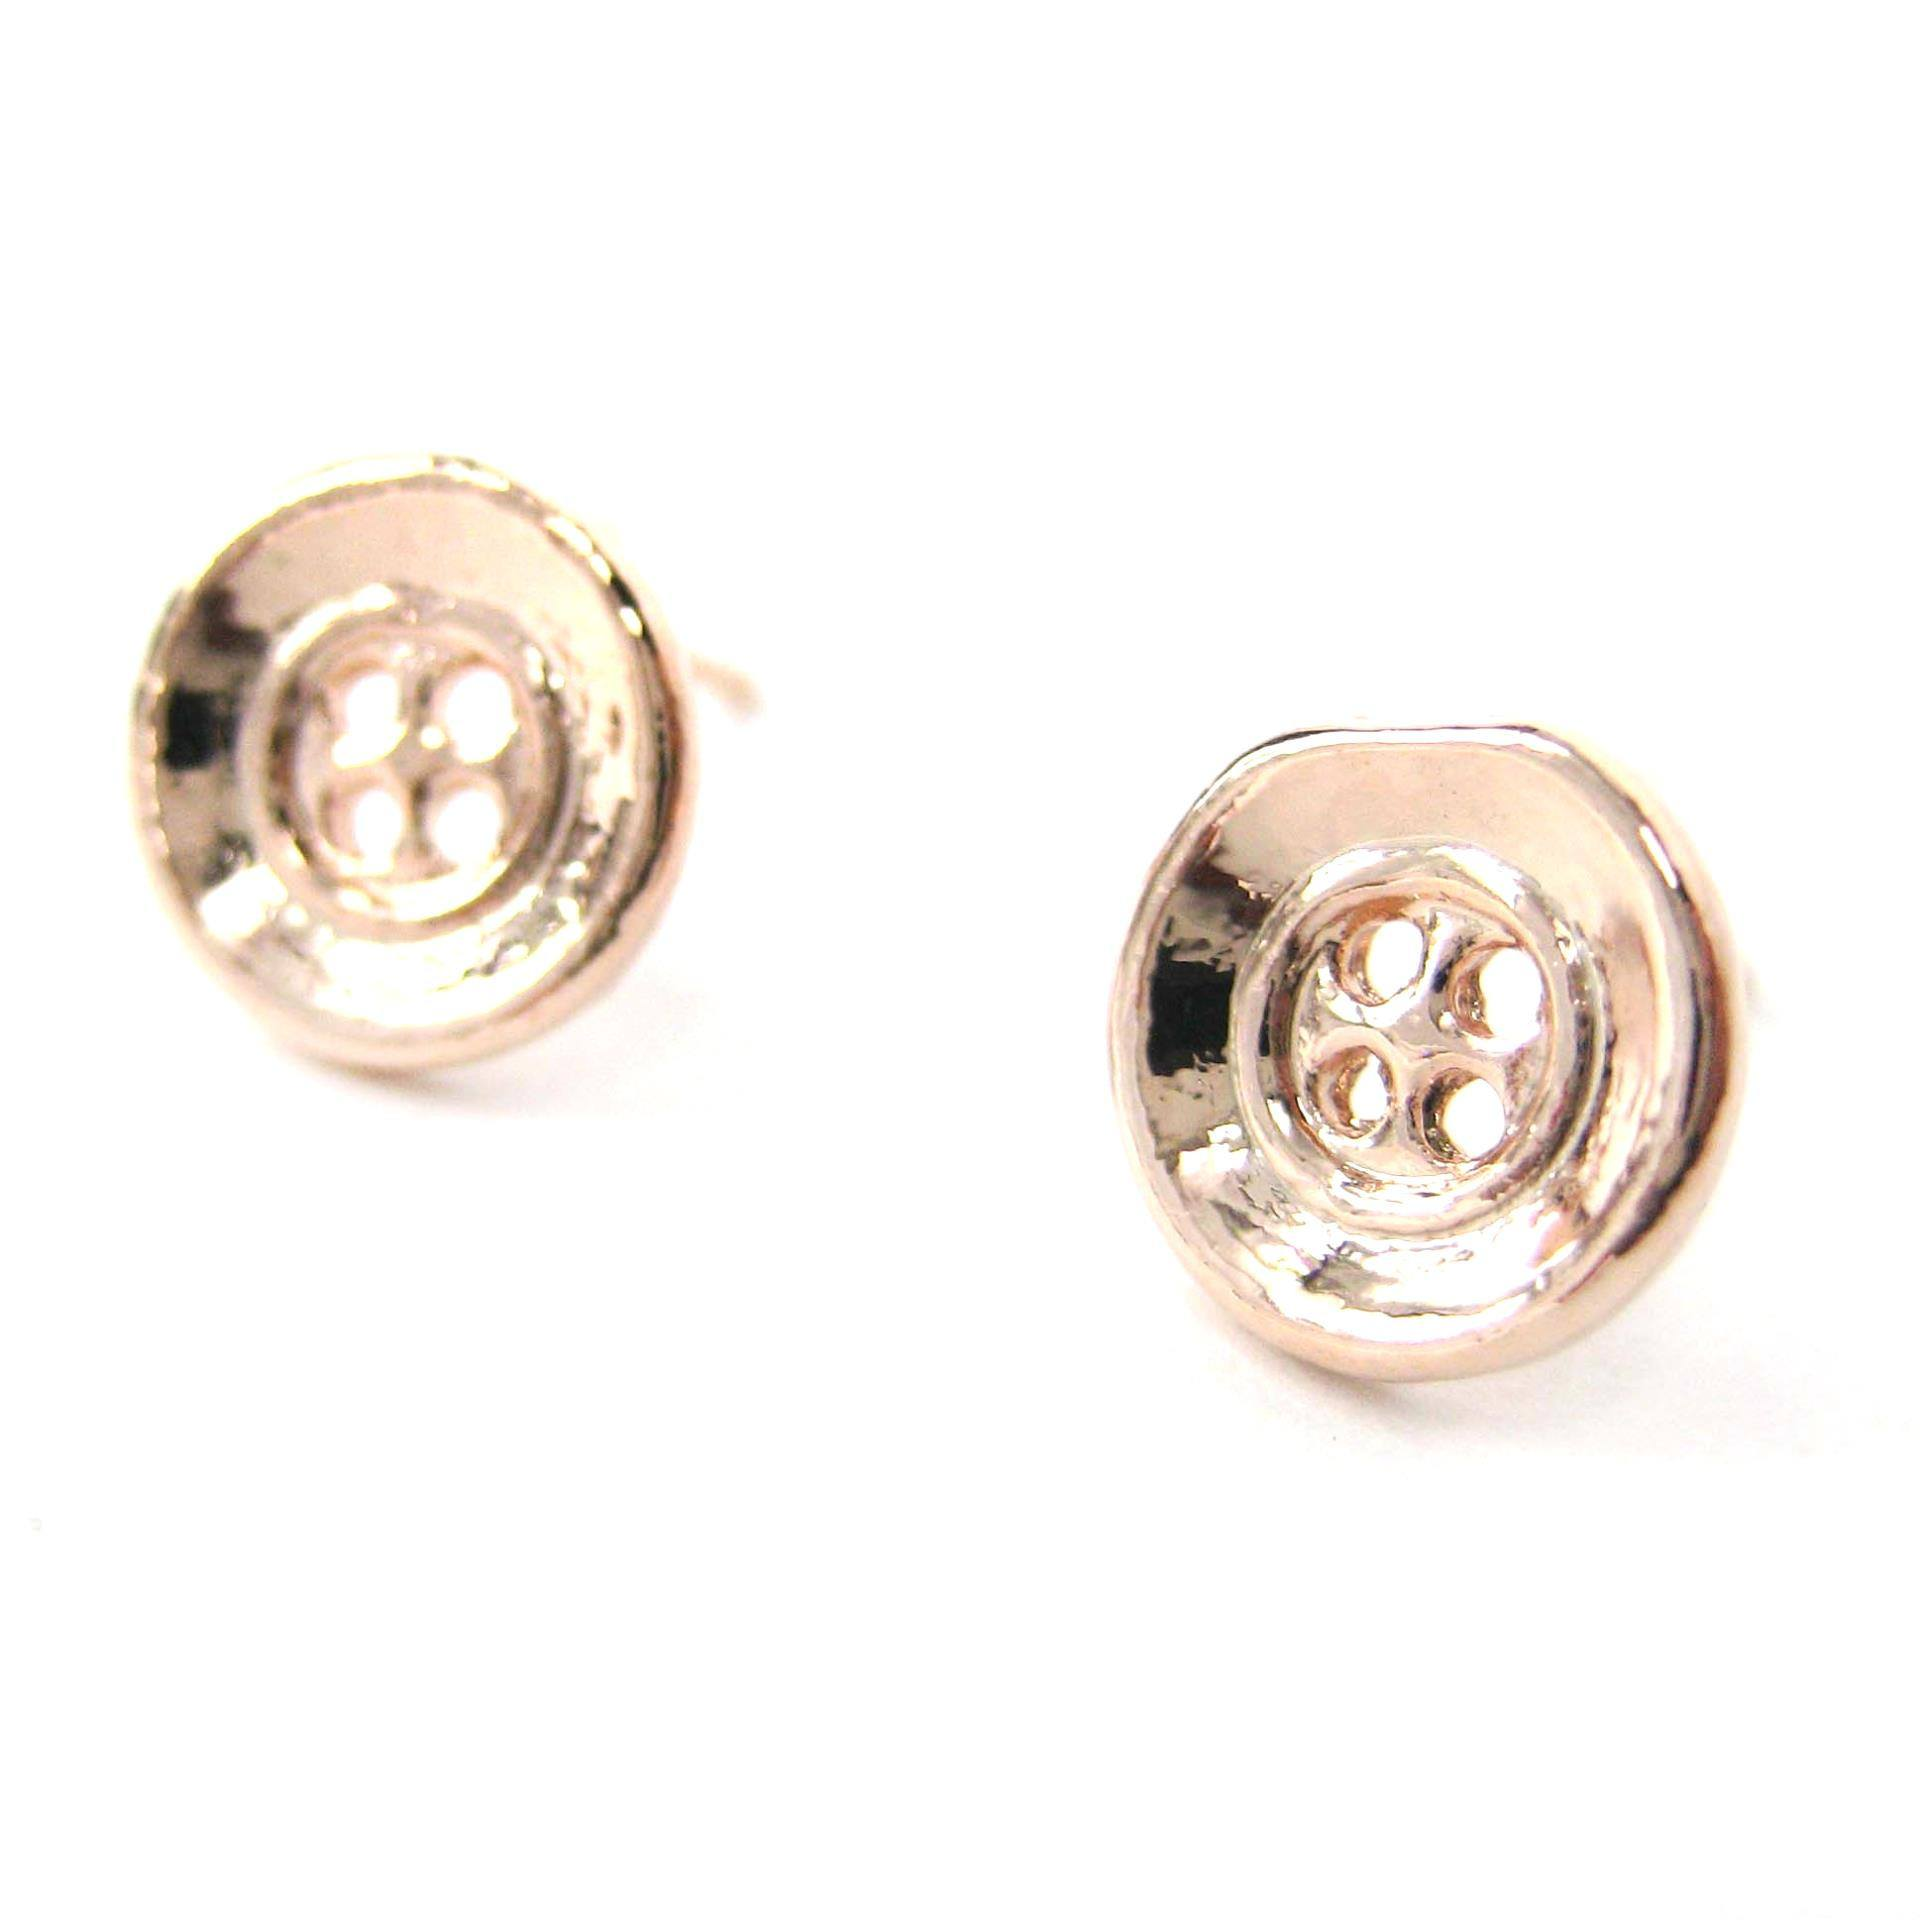 small-round-button-stud-earrings-in-rose-gold